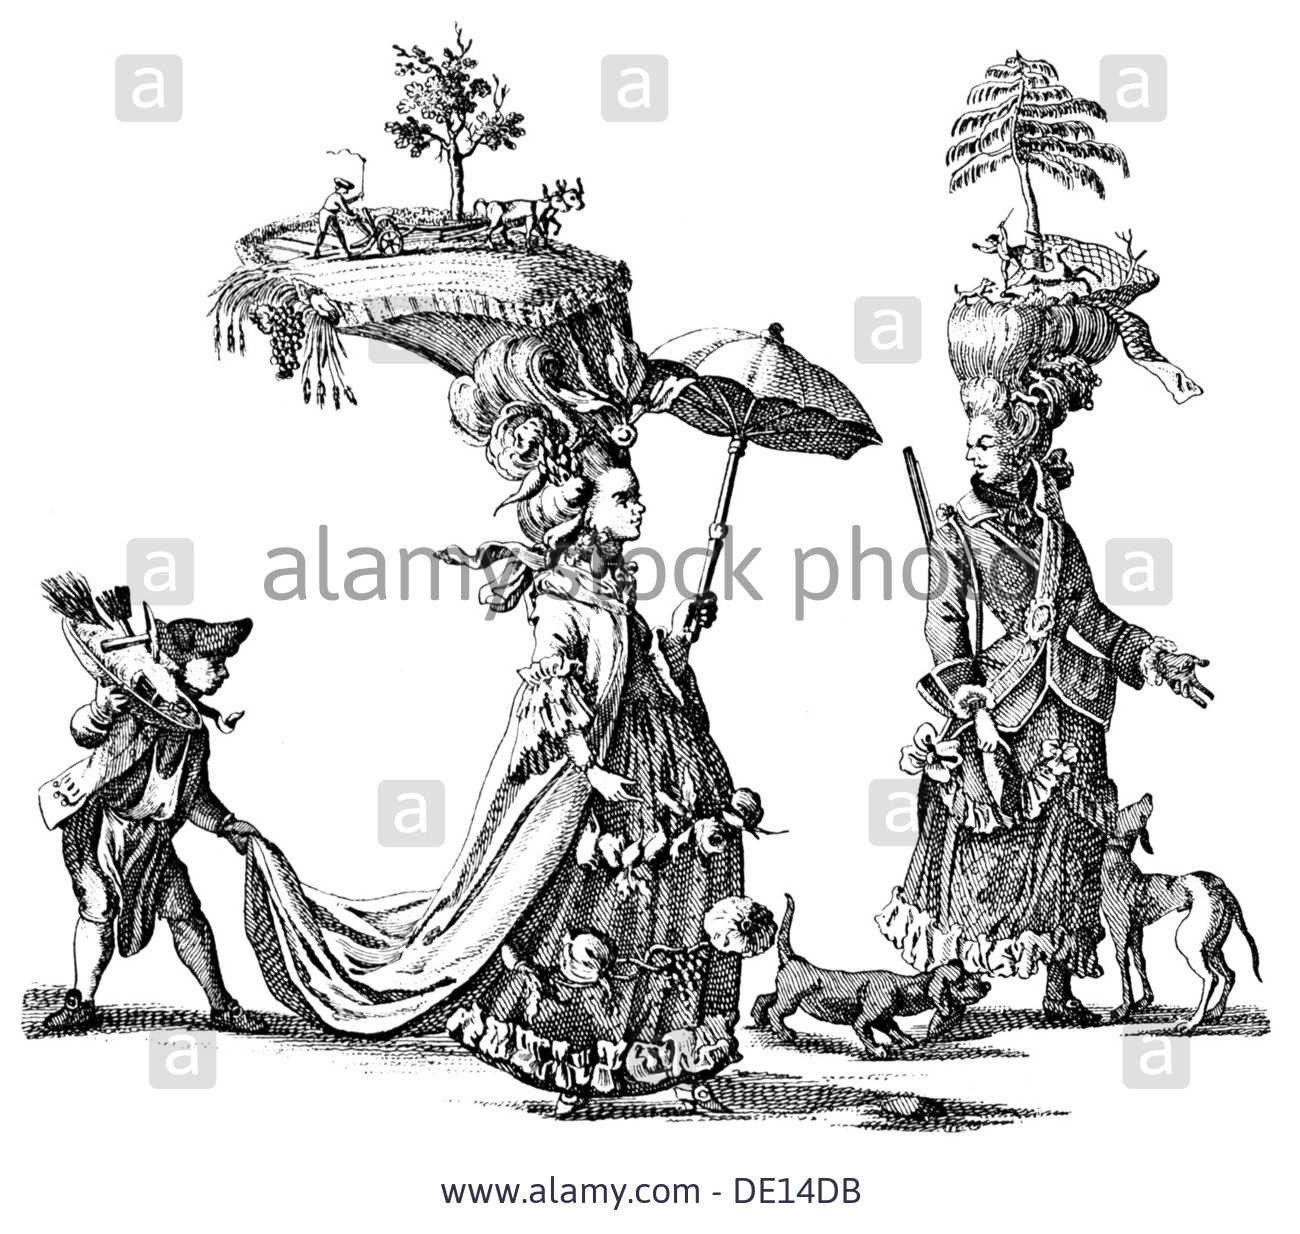 Download this stock image fashion 18th century putup